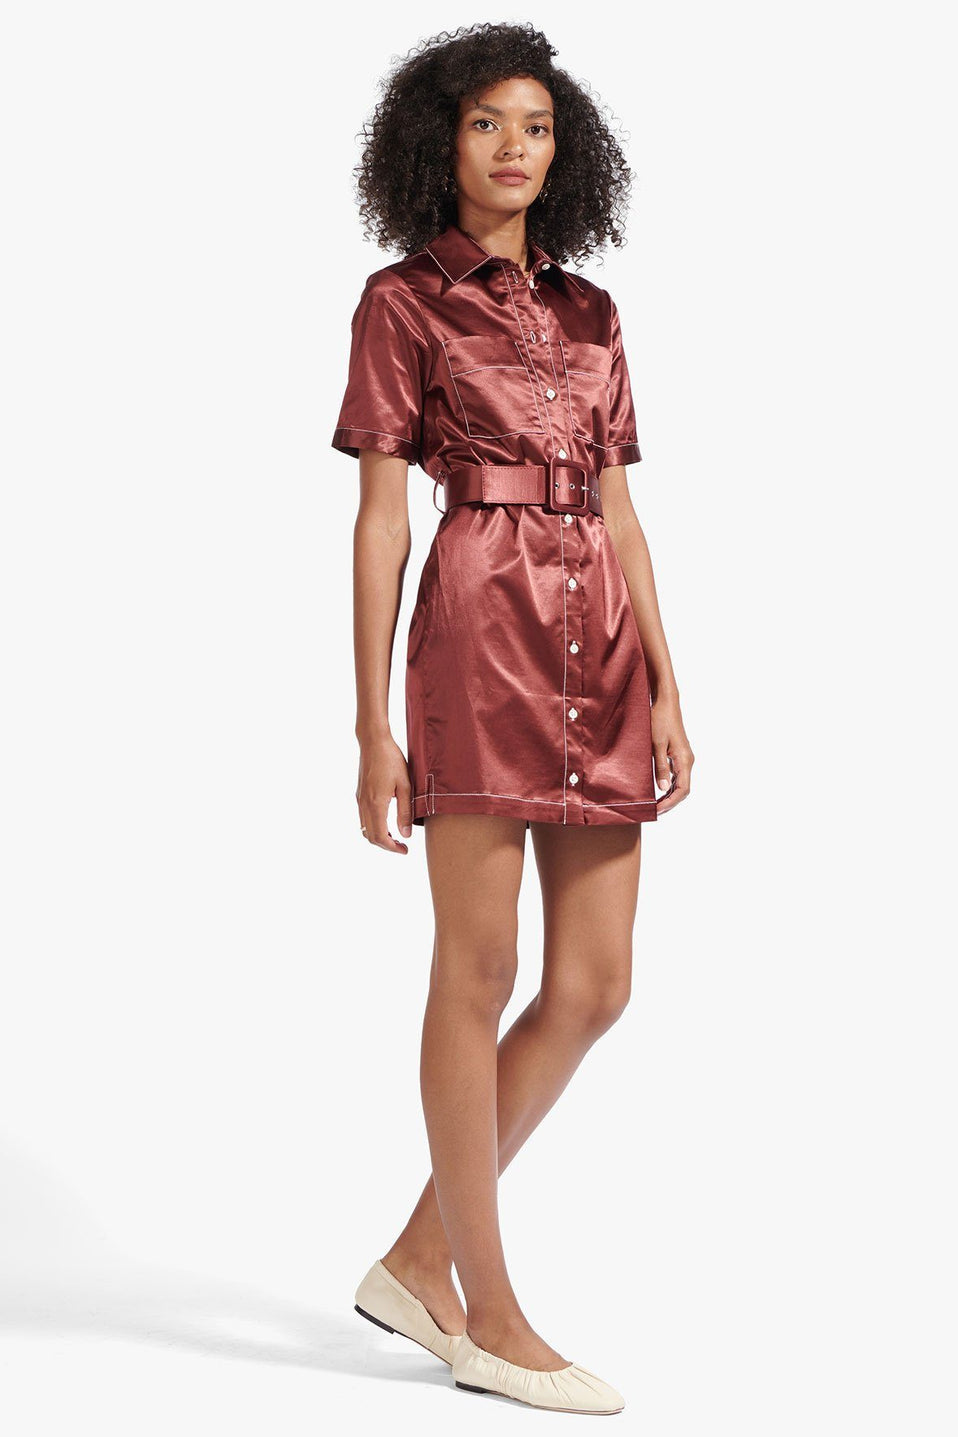 The Bentley Dress in Tawny Port